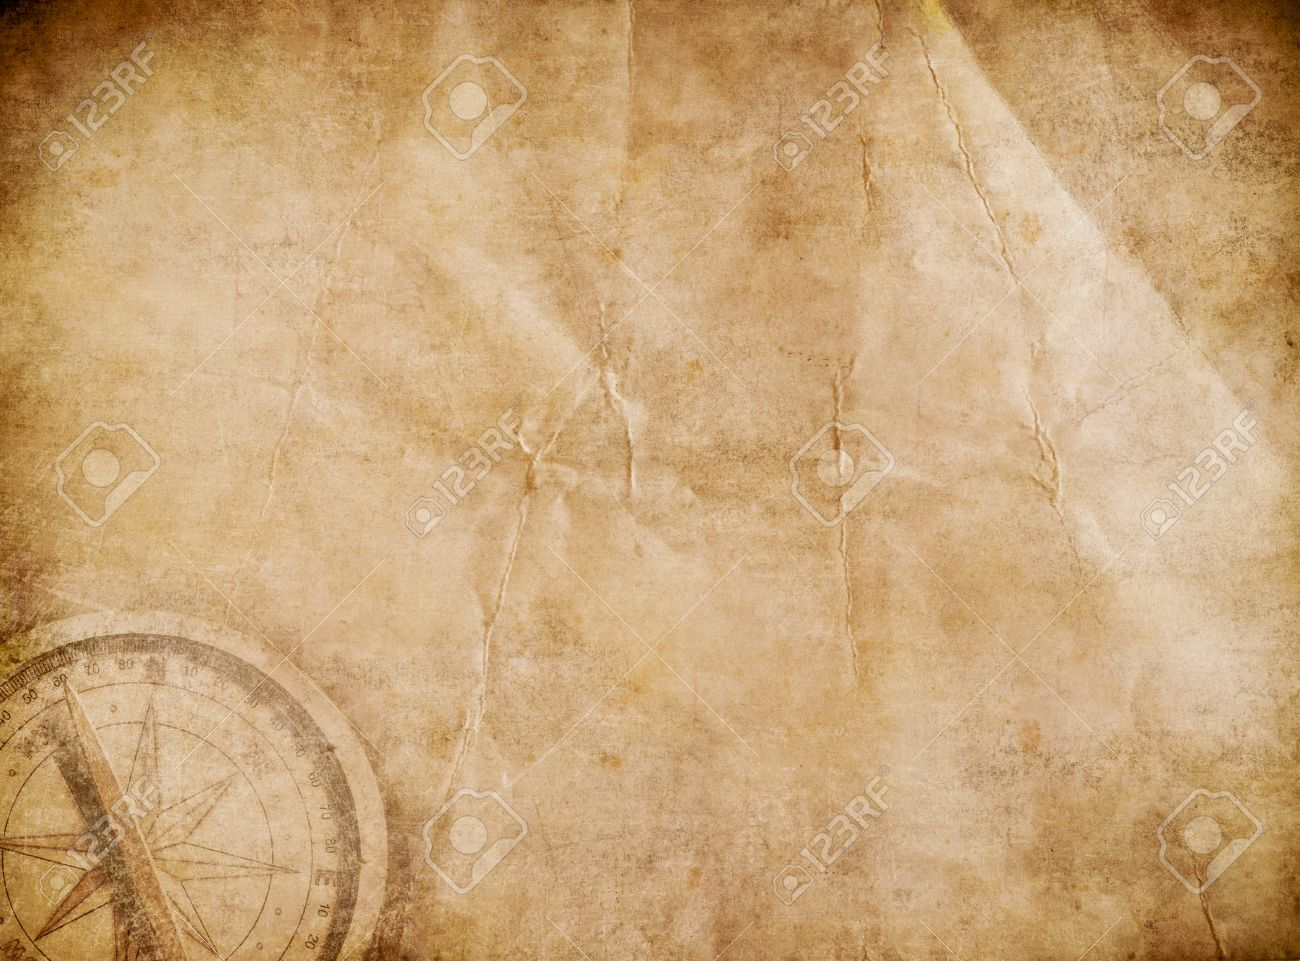 Aged Pirates Map Background. Old Treasure Map. Stock Photo, Picture on